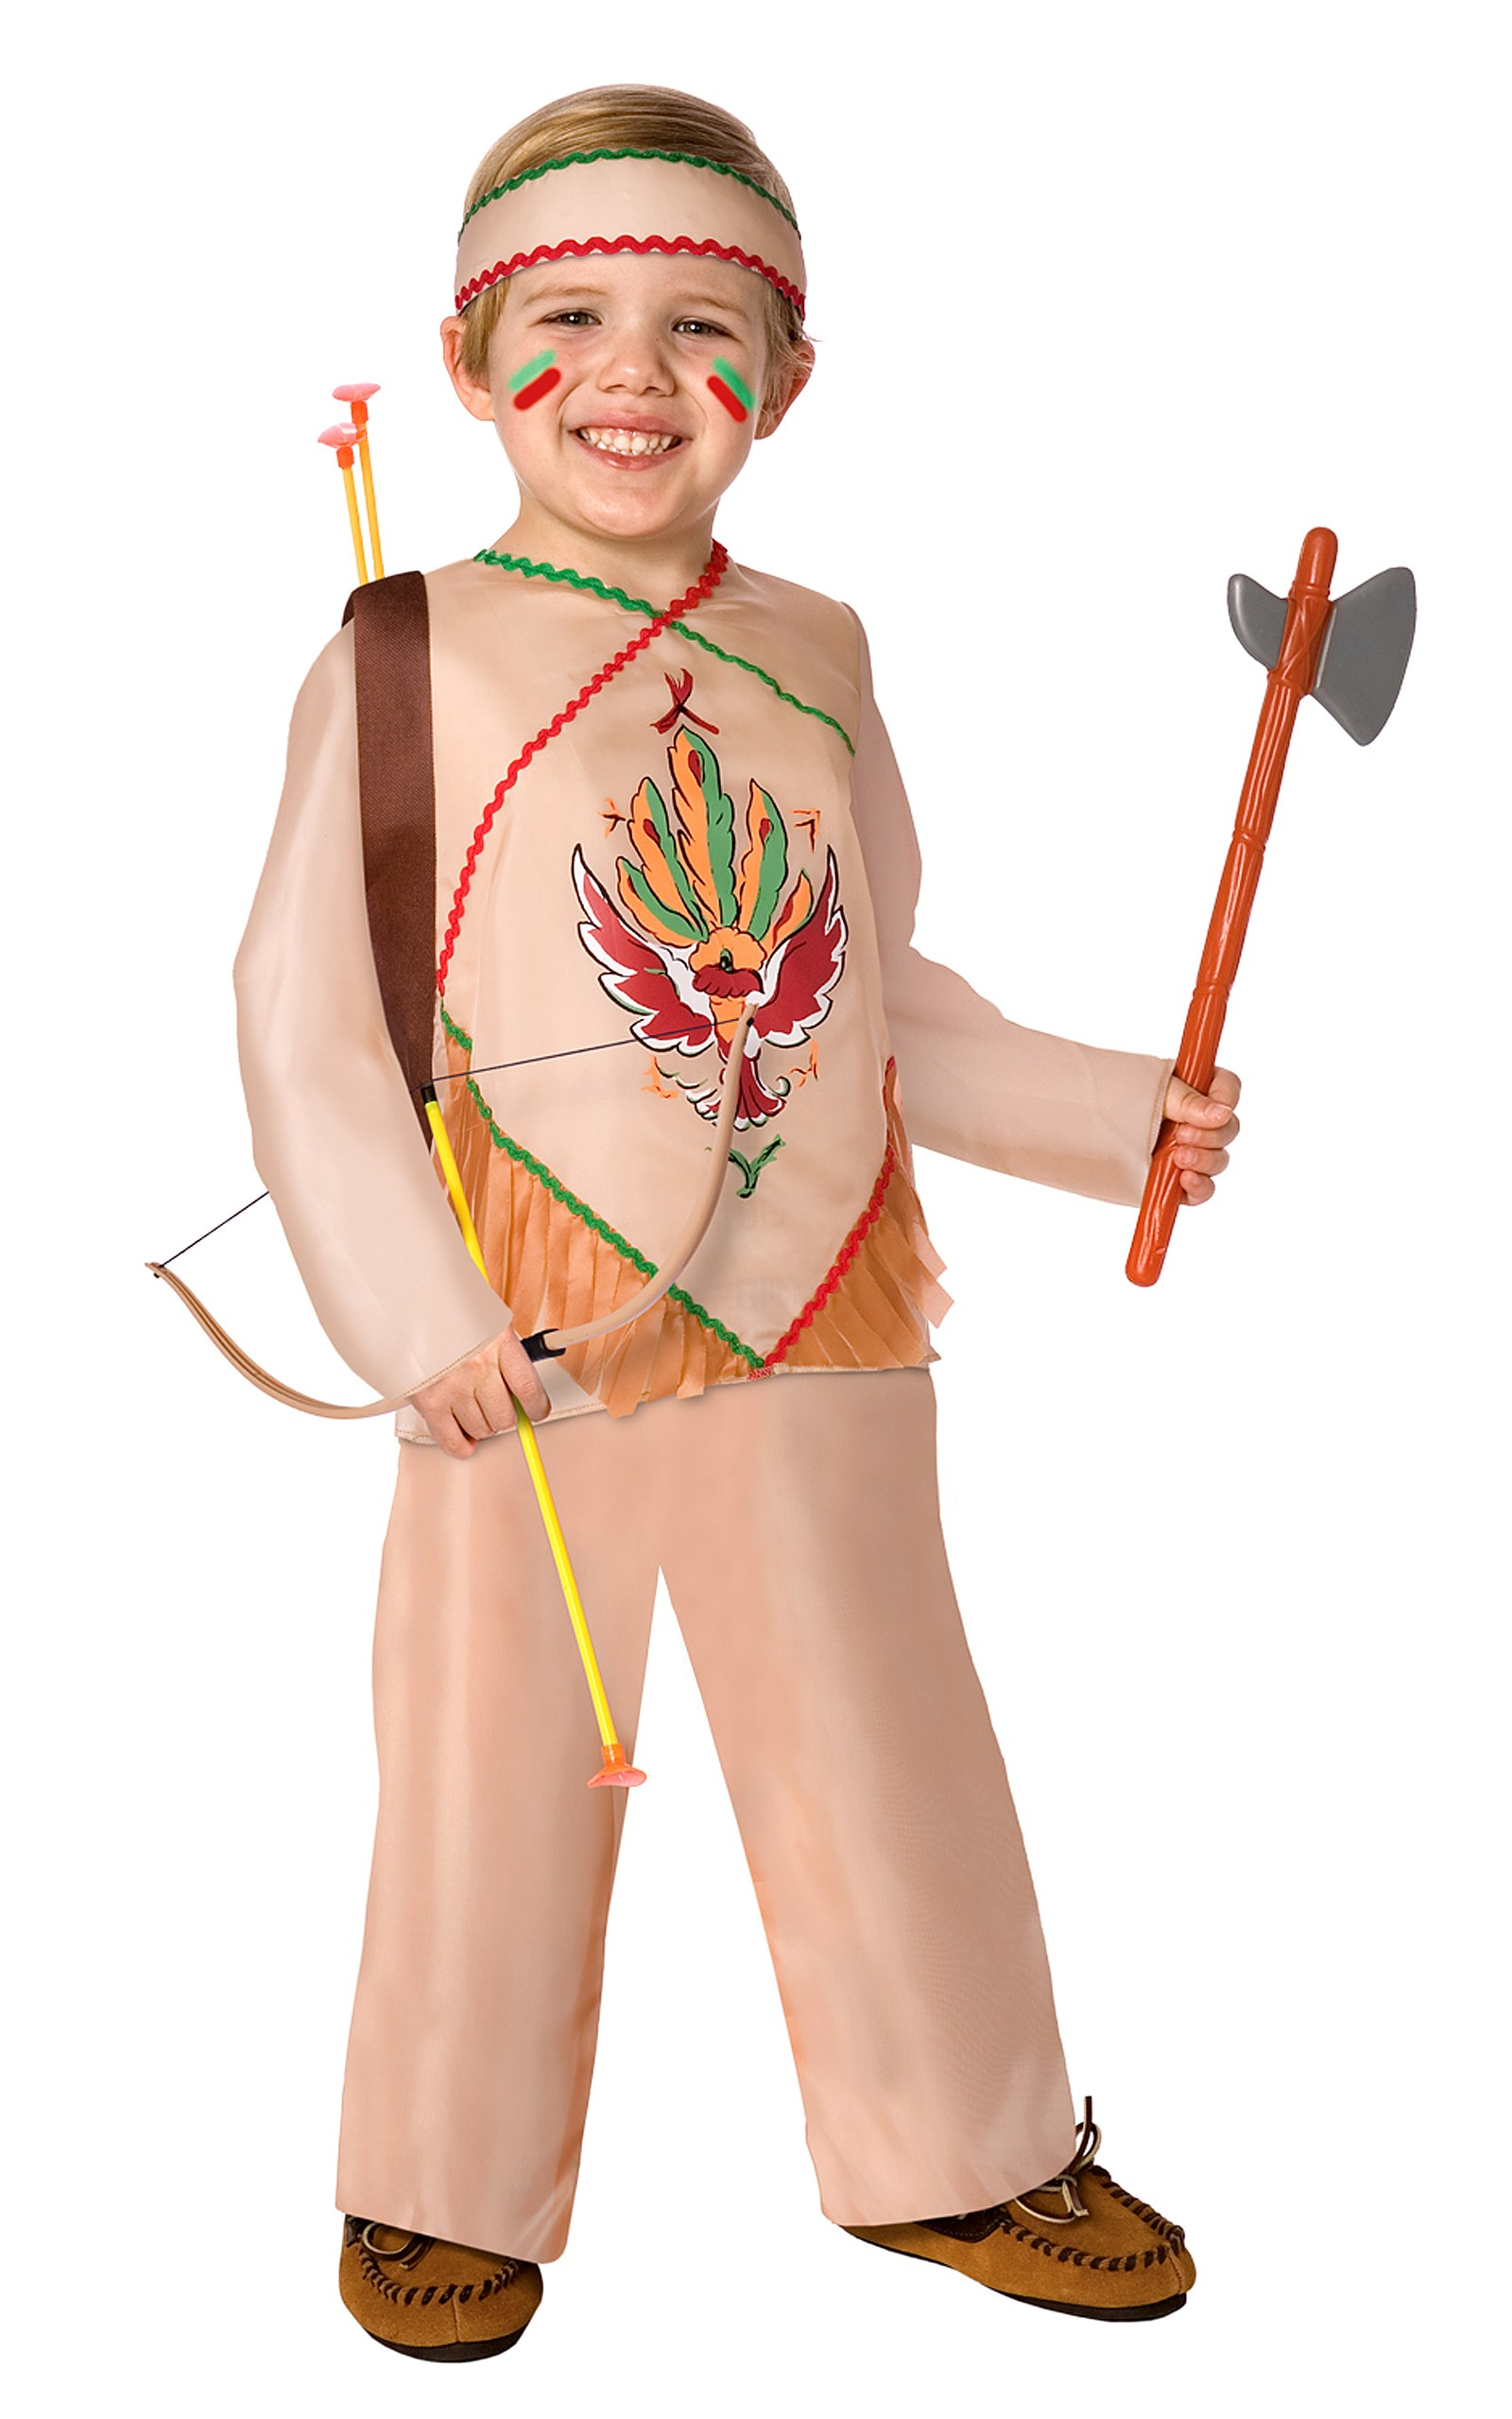 Indian Child Costume One Size (Fits Sizes 4-8)